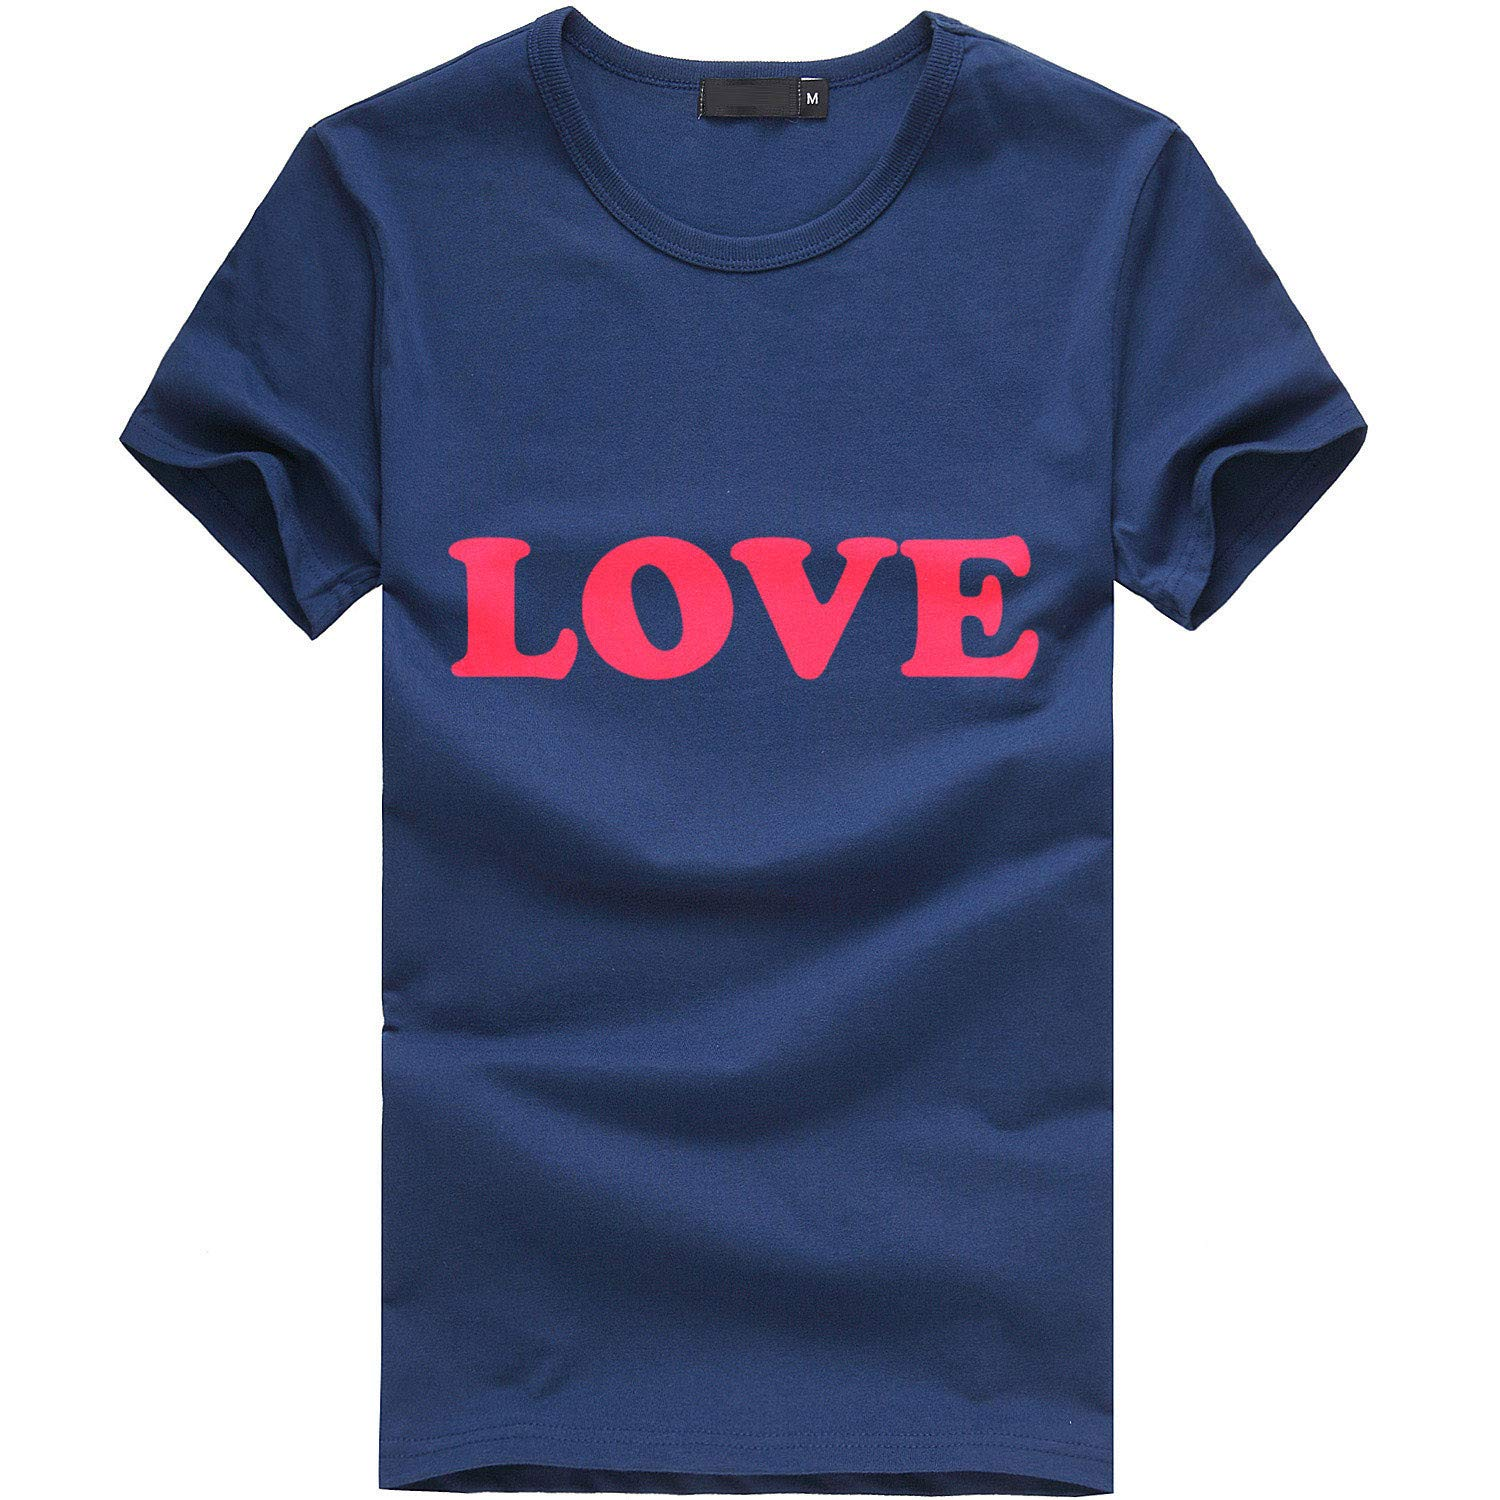 minjiSF Women's Summer Love Print Tee Short Sleeve Round Neck Loose Tops Casual Blouse T-Shirt Plus Size Navy